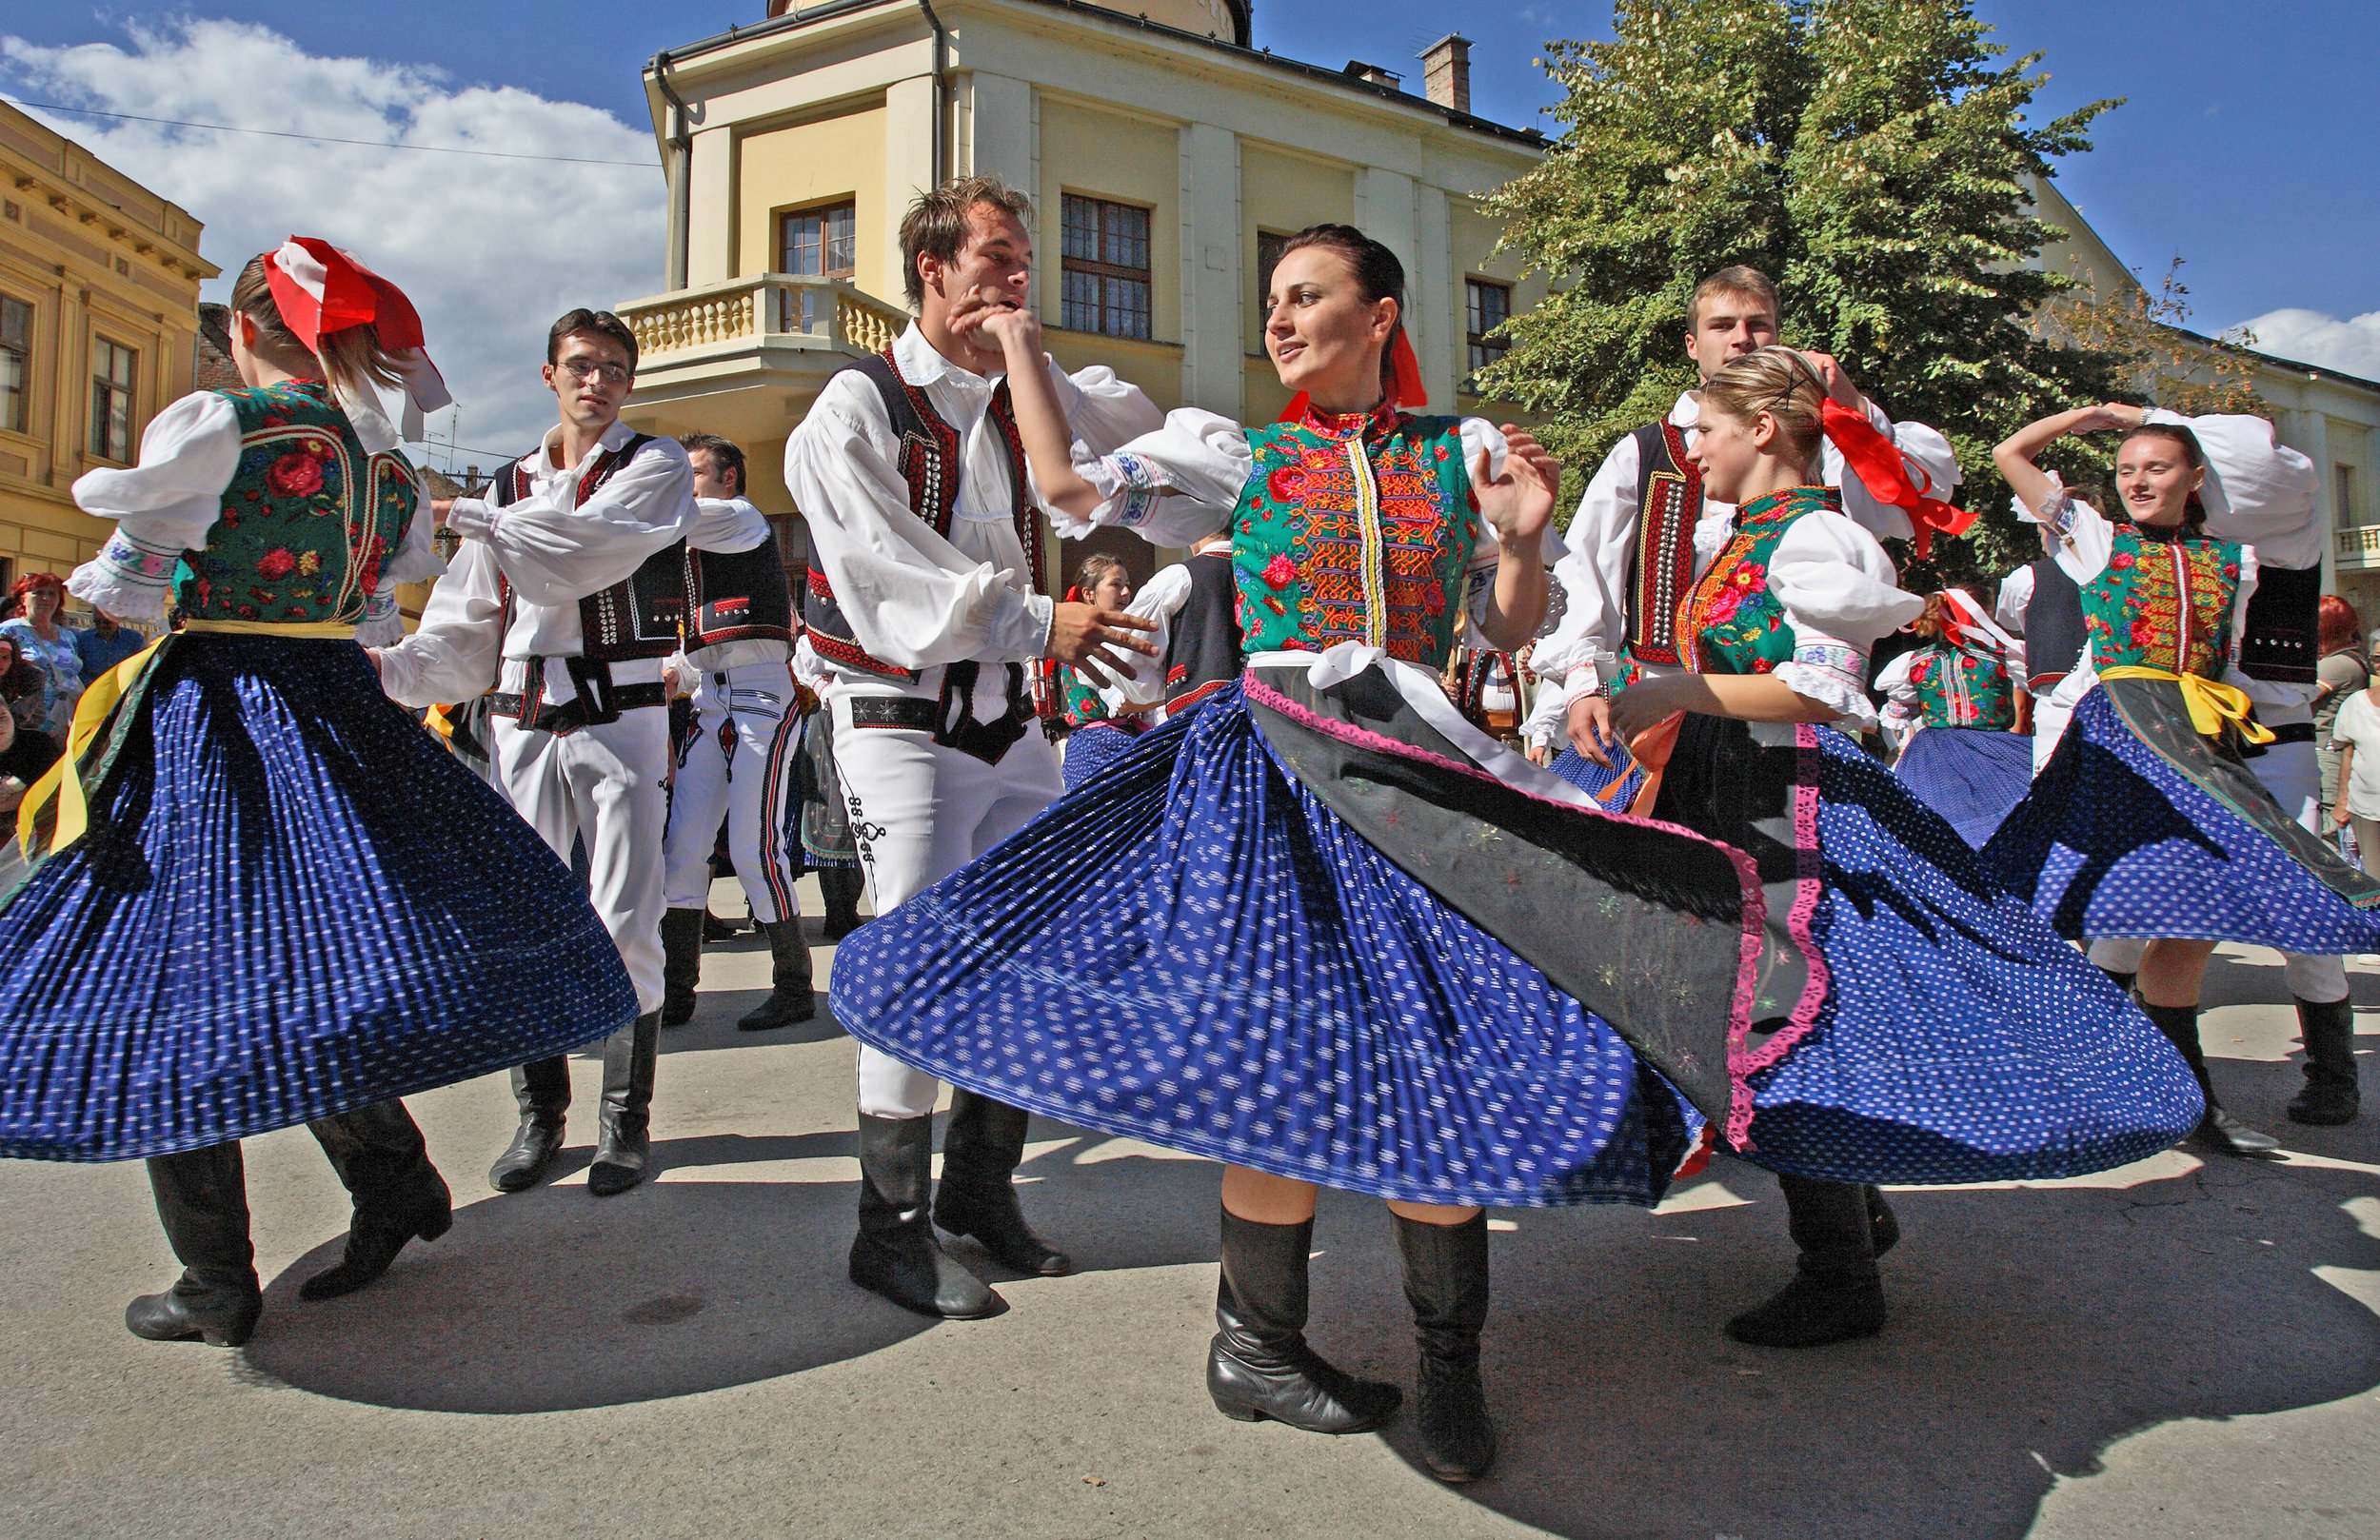 Europe_Belgrade_Serbian Folk_001.jpg